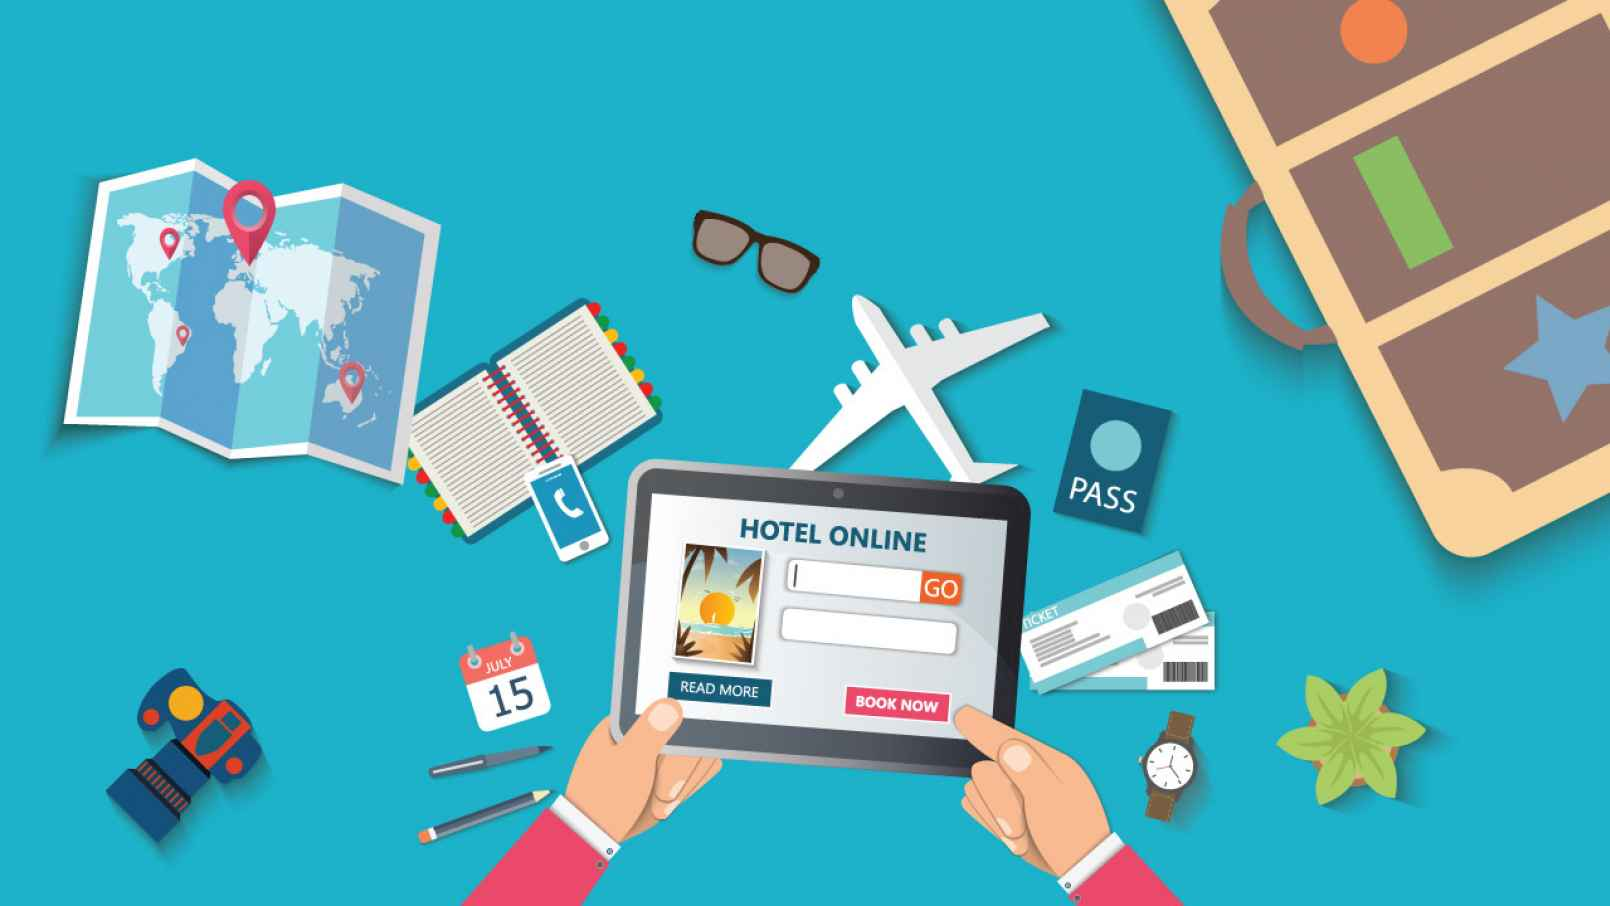 Why Should You Consider Building a Travel Website on Drupal?